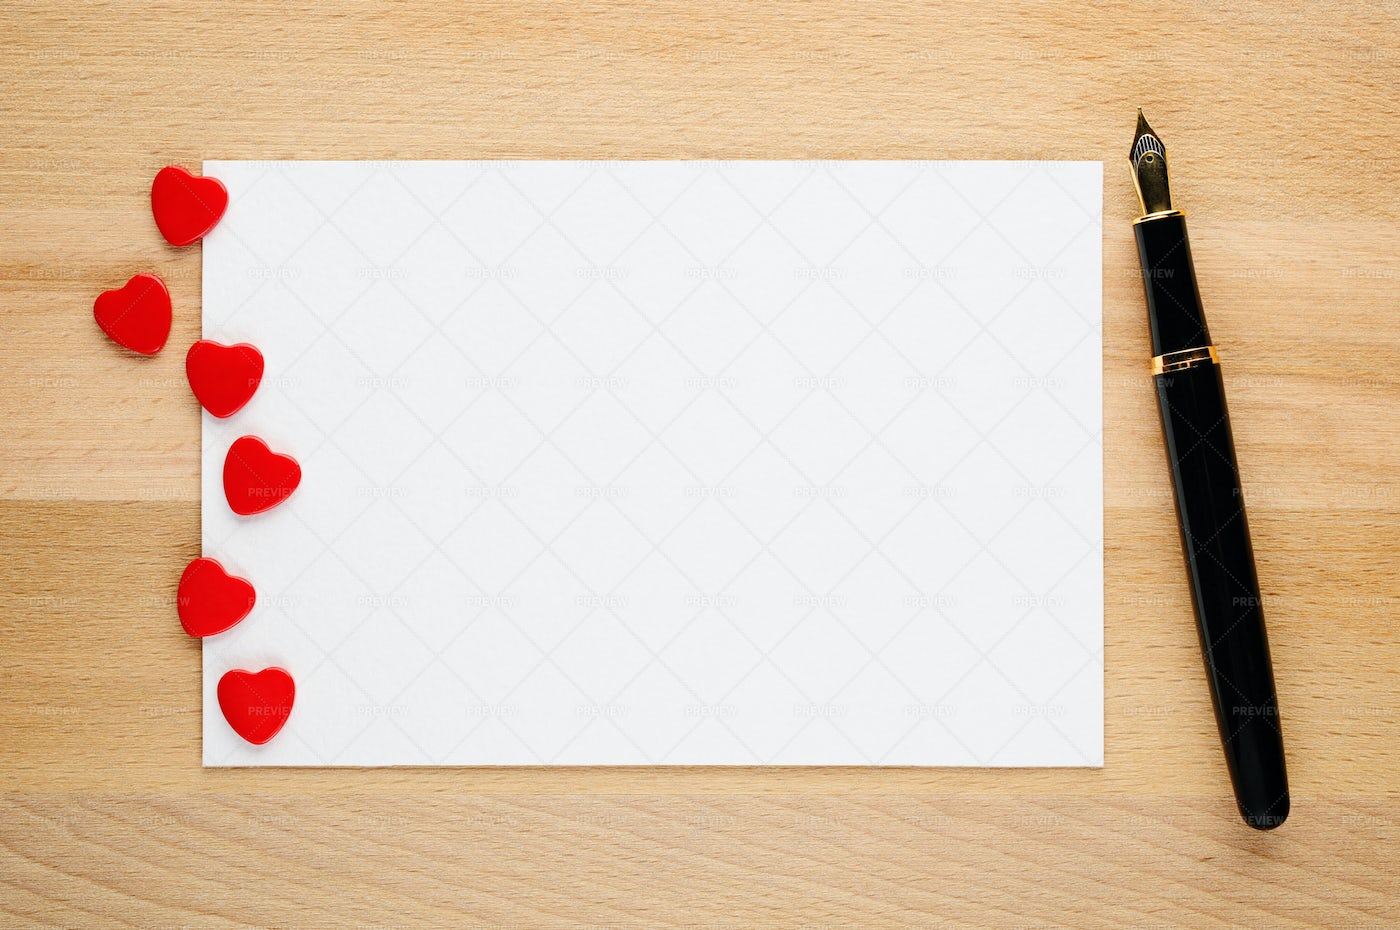 Blank Valentines Card, Hearts And Pen: Stock Photos